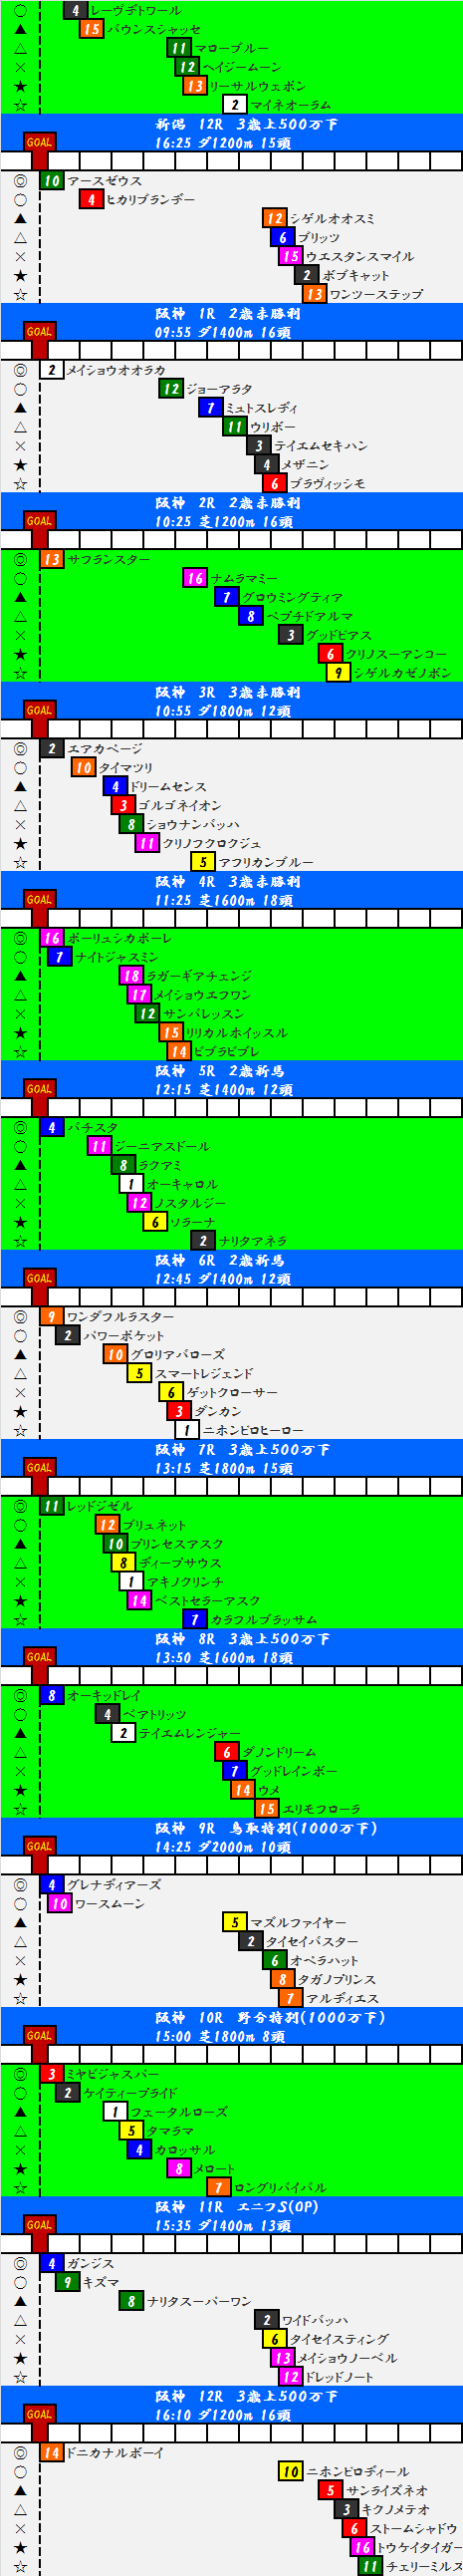 2014091302.png